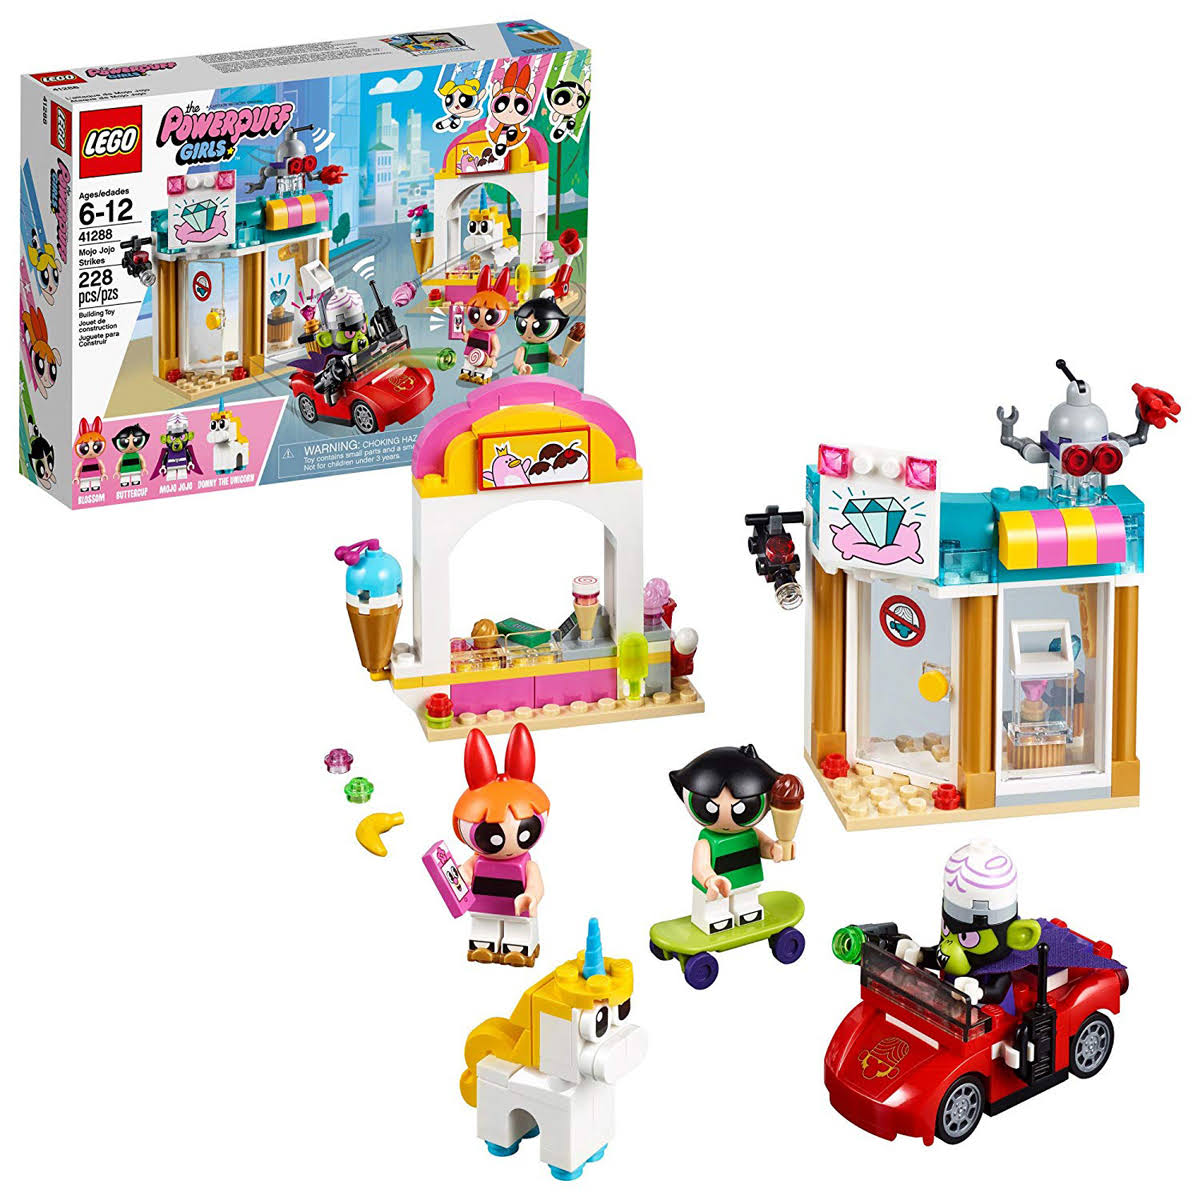 Lego Powerpuff Girls 41288 Mojo Jojo Strikes